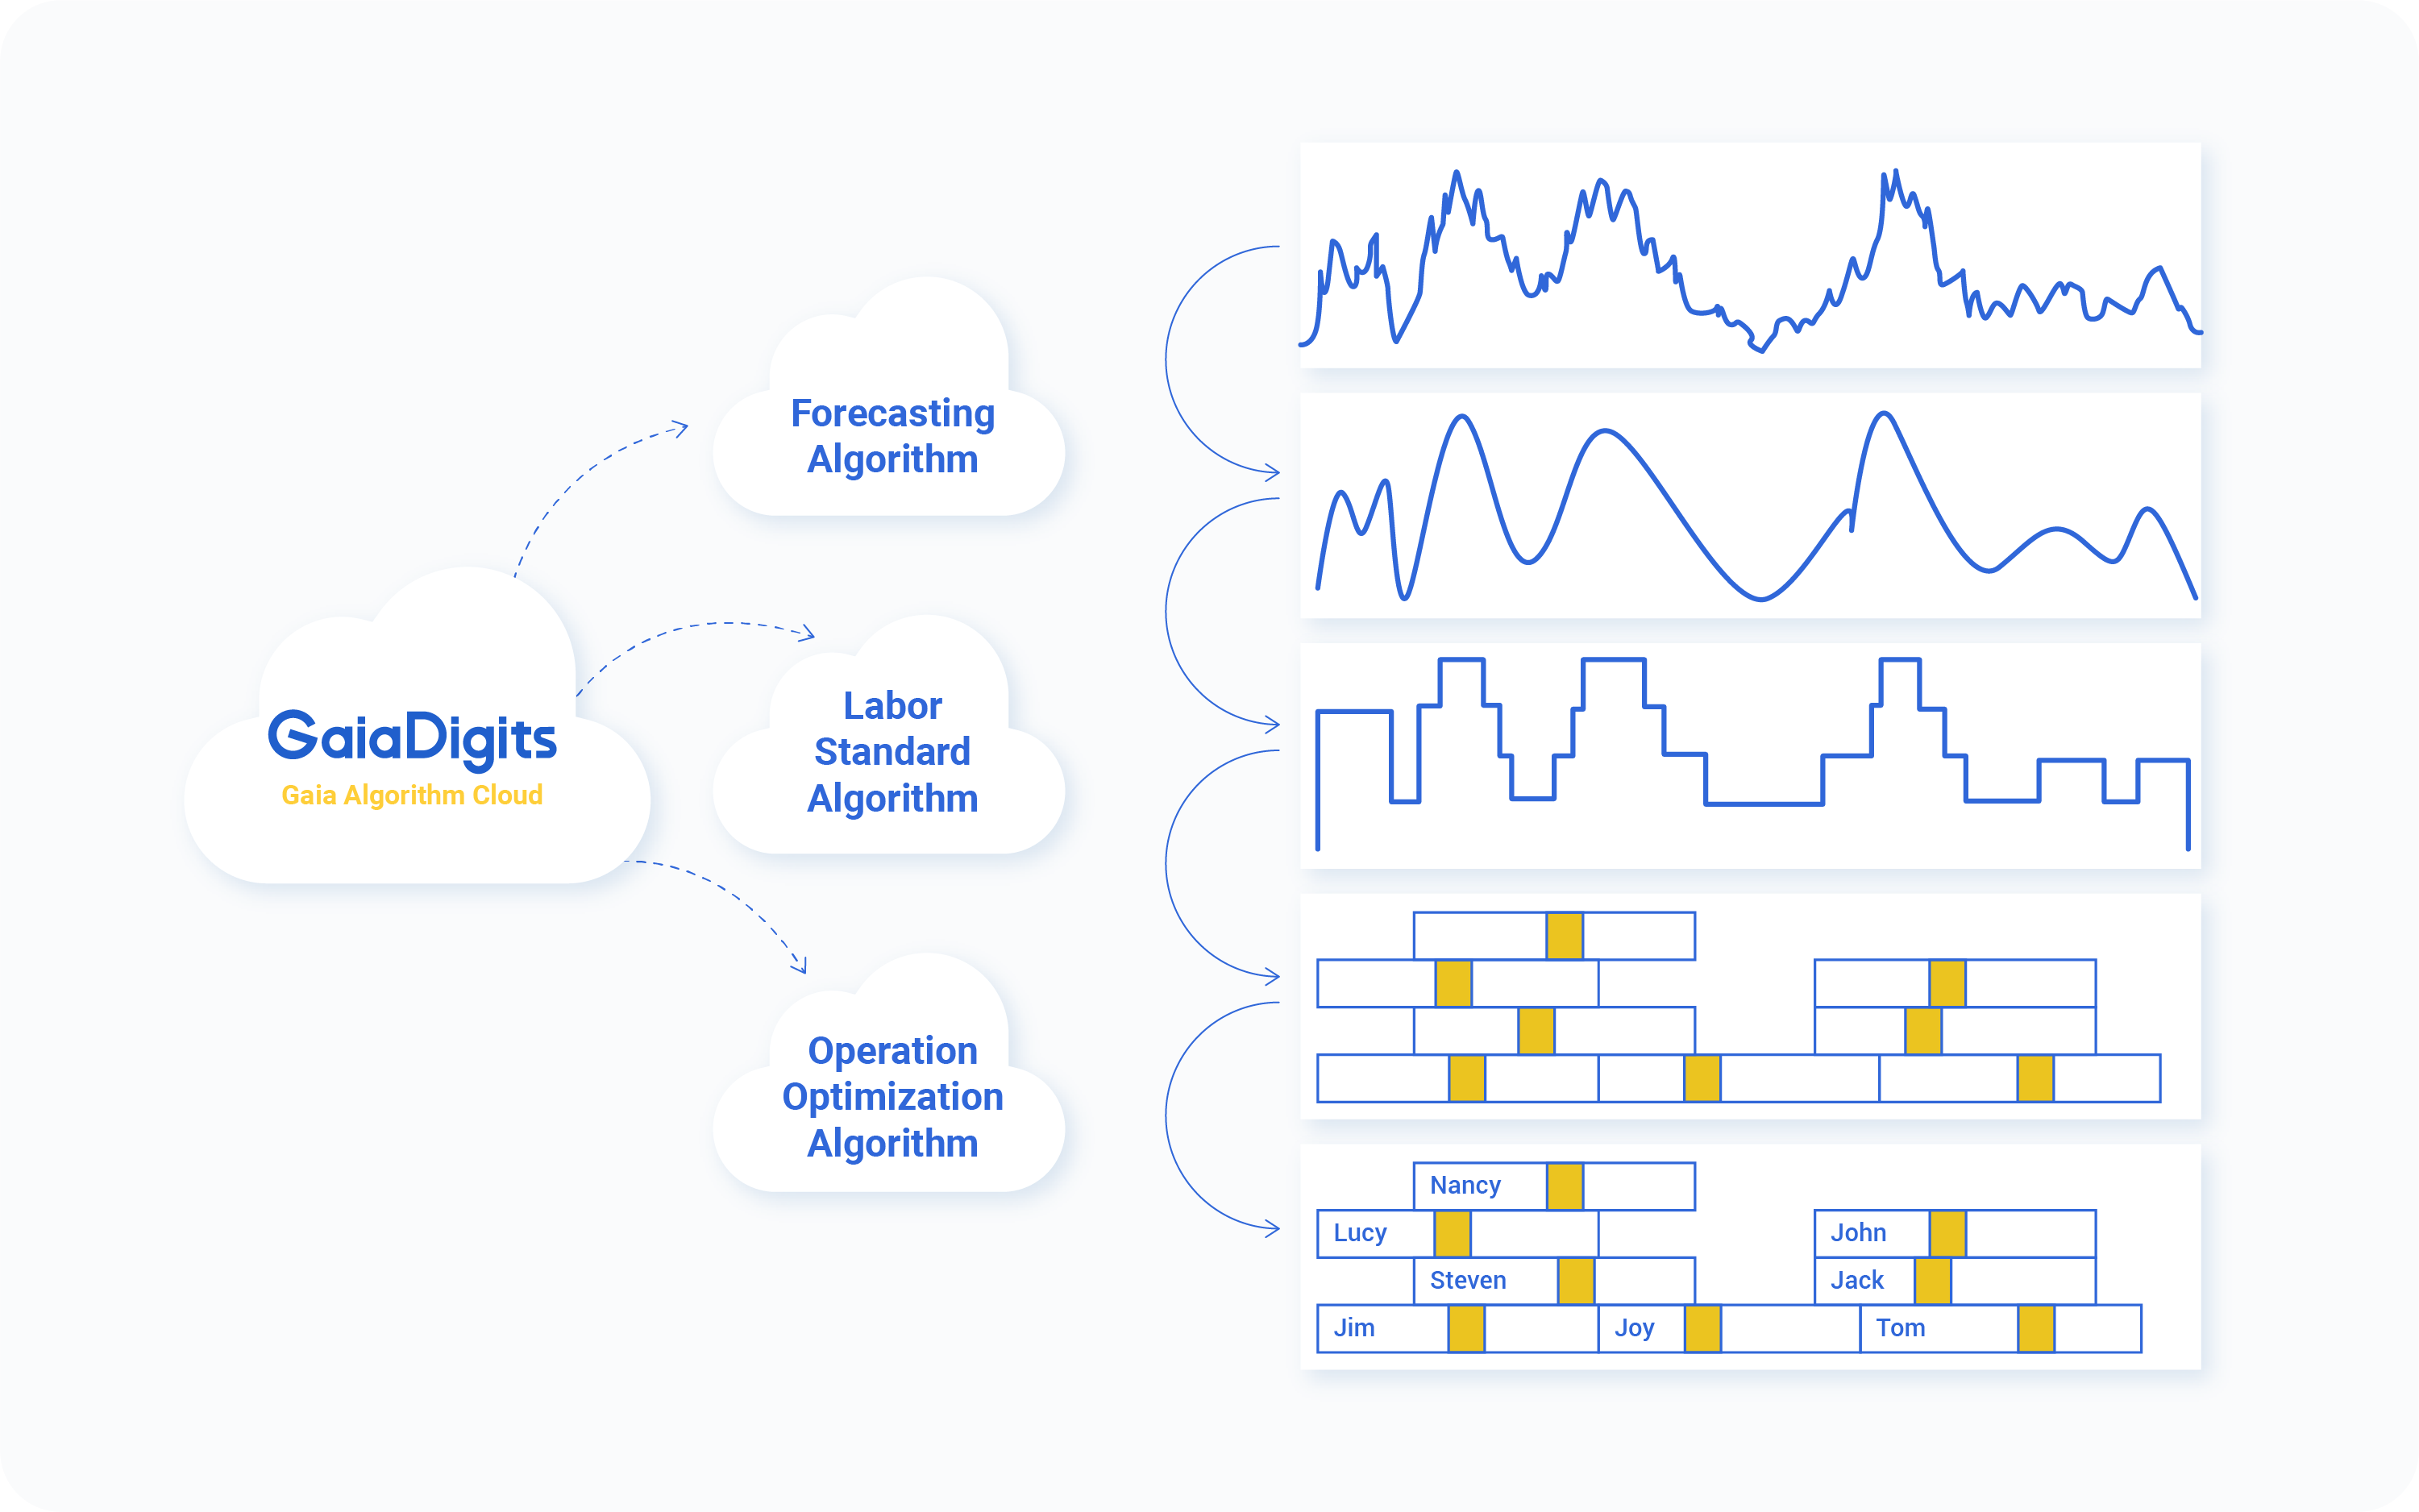 Powerful scheduling automation with business forecasts and shifts optimization. It works with complex factors, compliance, skills, availability and more.